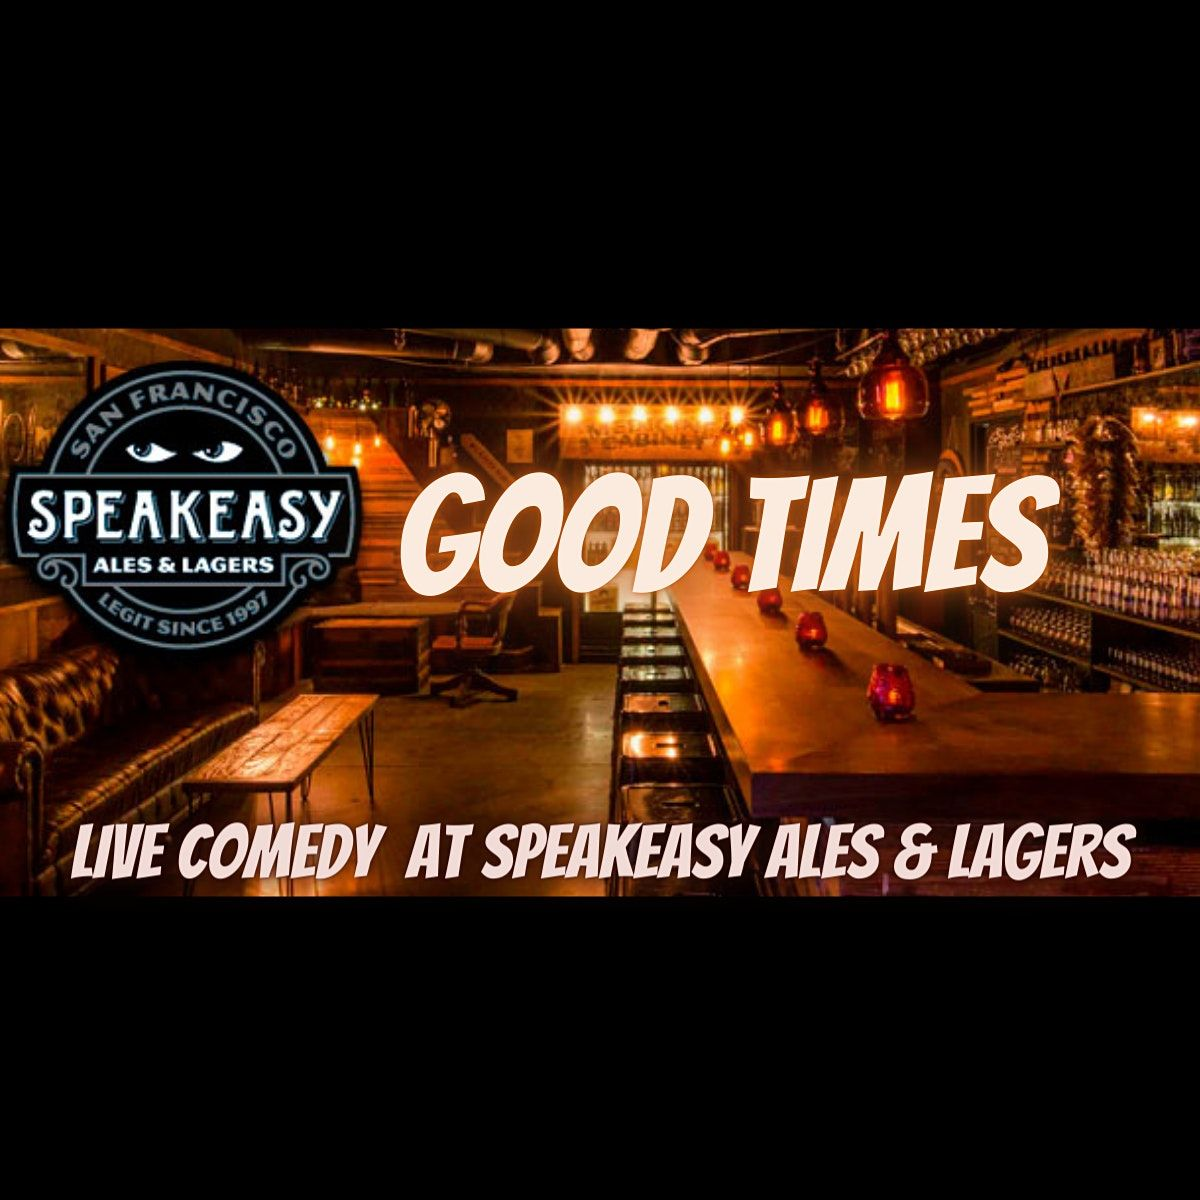 Good Times: Live Comedy at Speakeasy Ales & Lagers